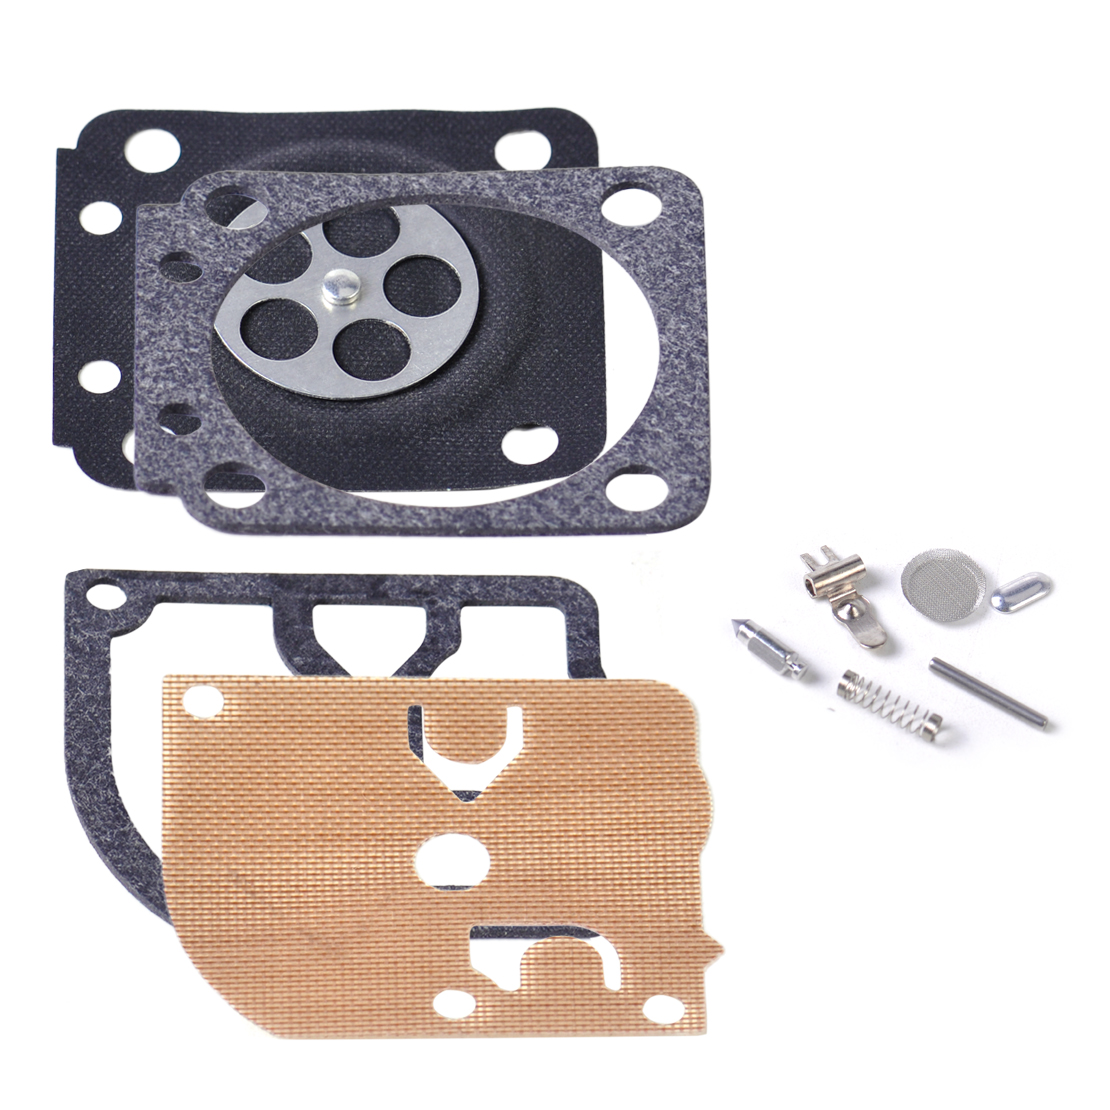 Carburetor Repair Replace Diaphragm Gasket Kit For Stihl 024 026 Ms260 Chainsaw